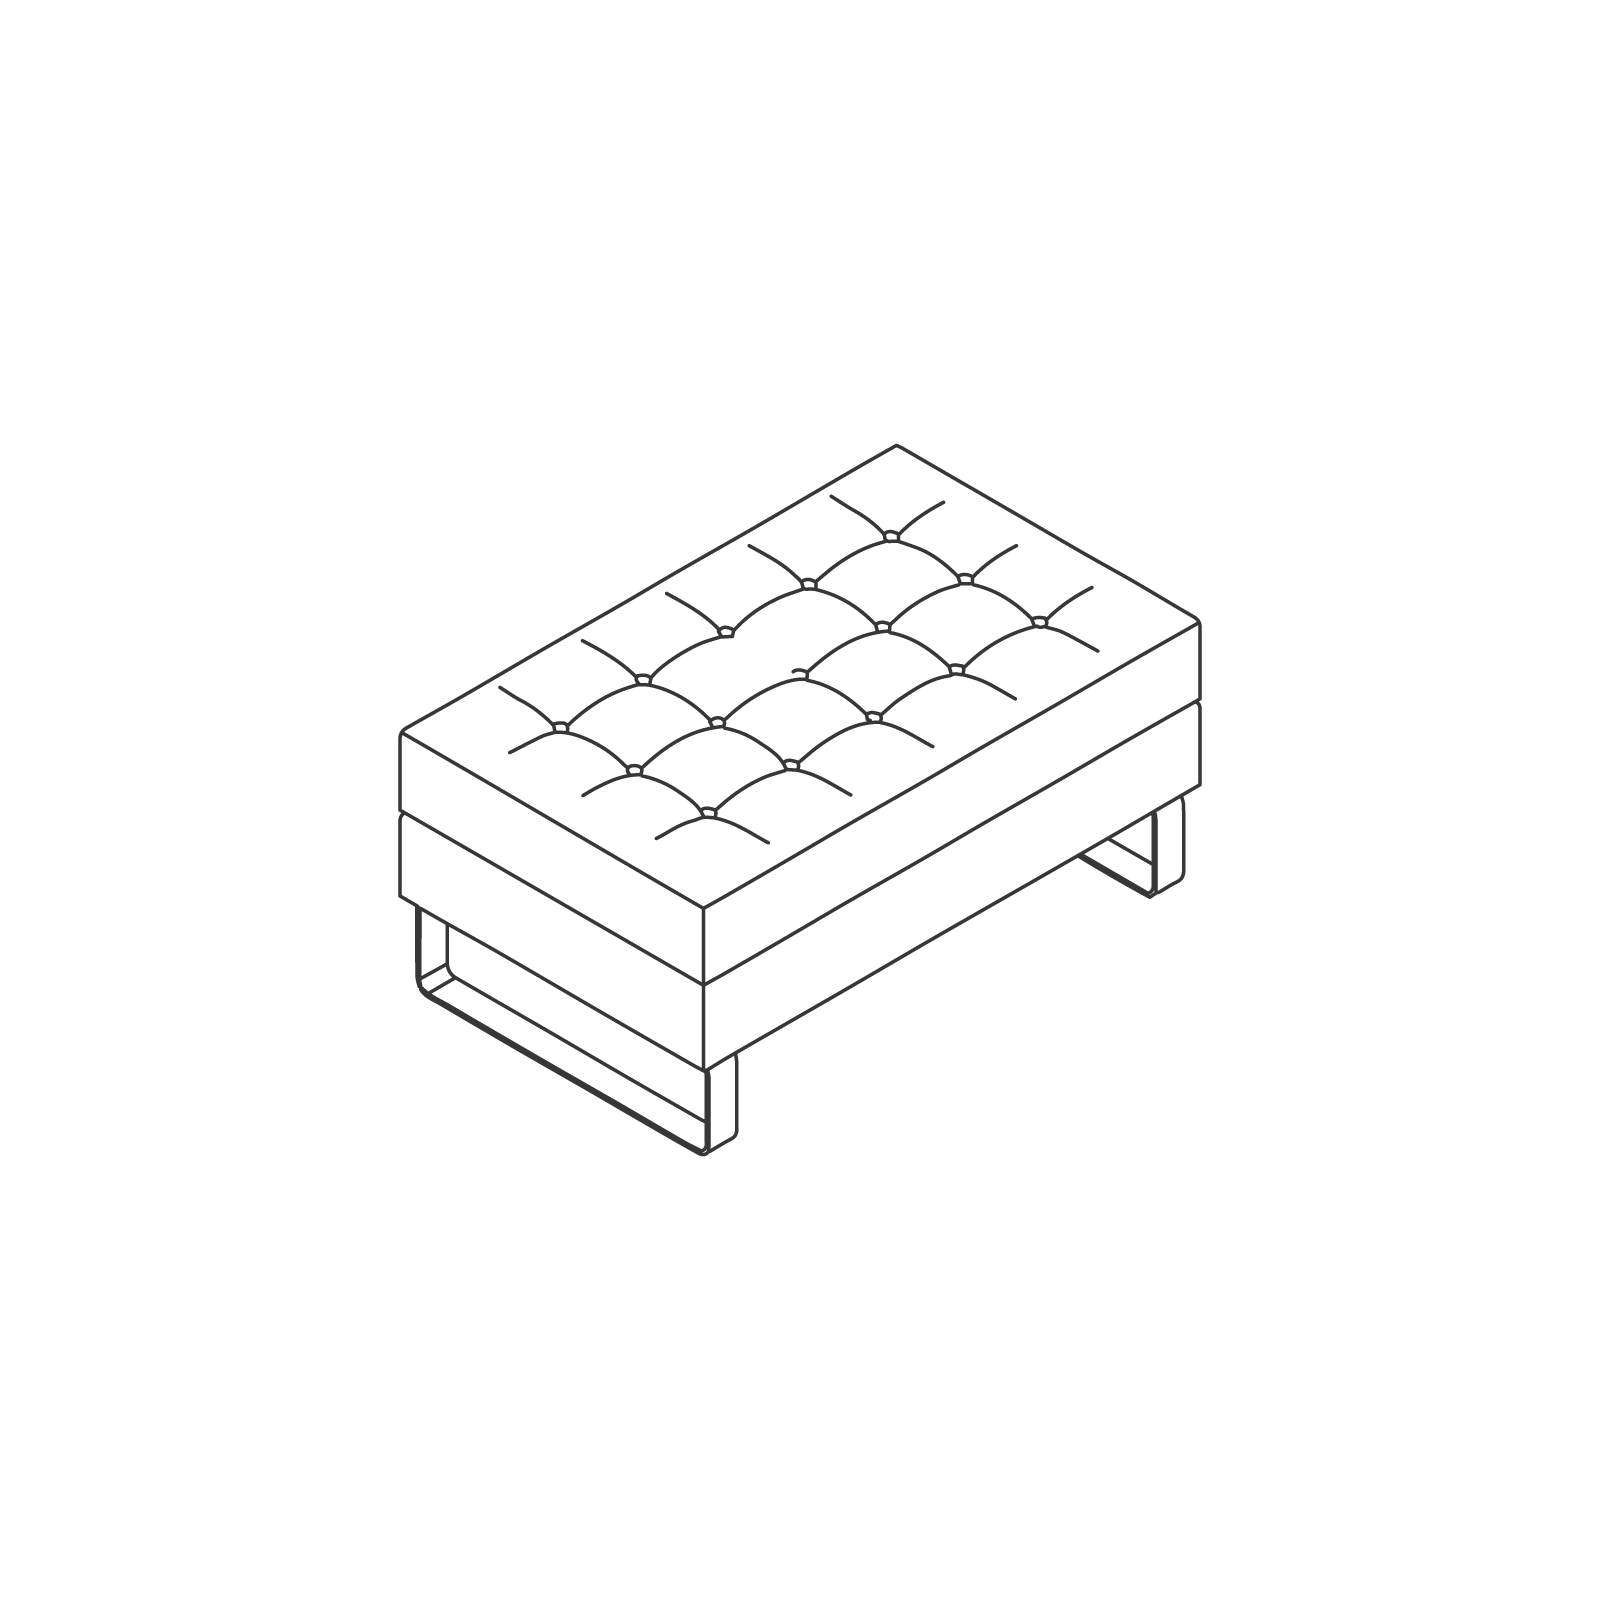 A line drawing of Clyde Single Stool.